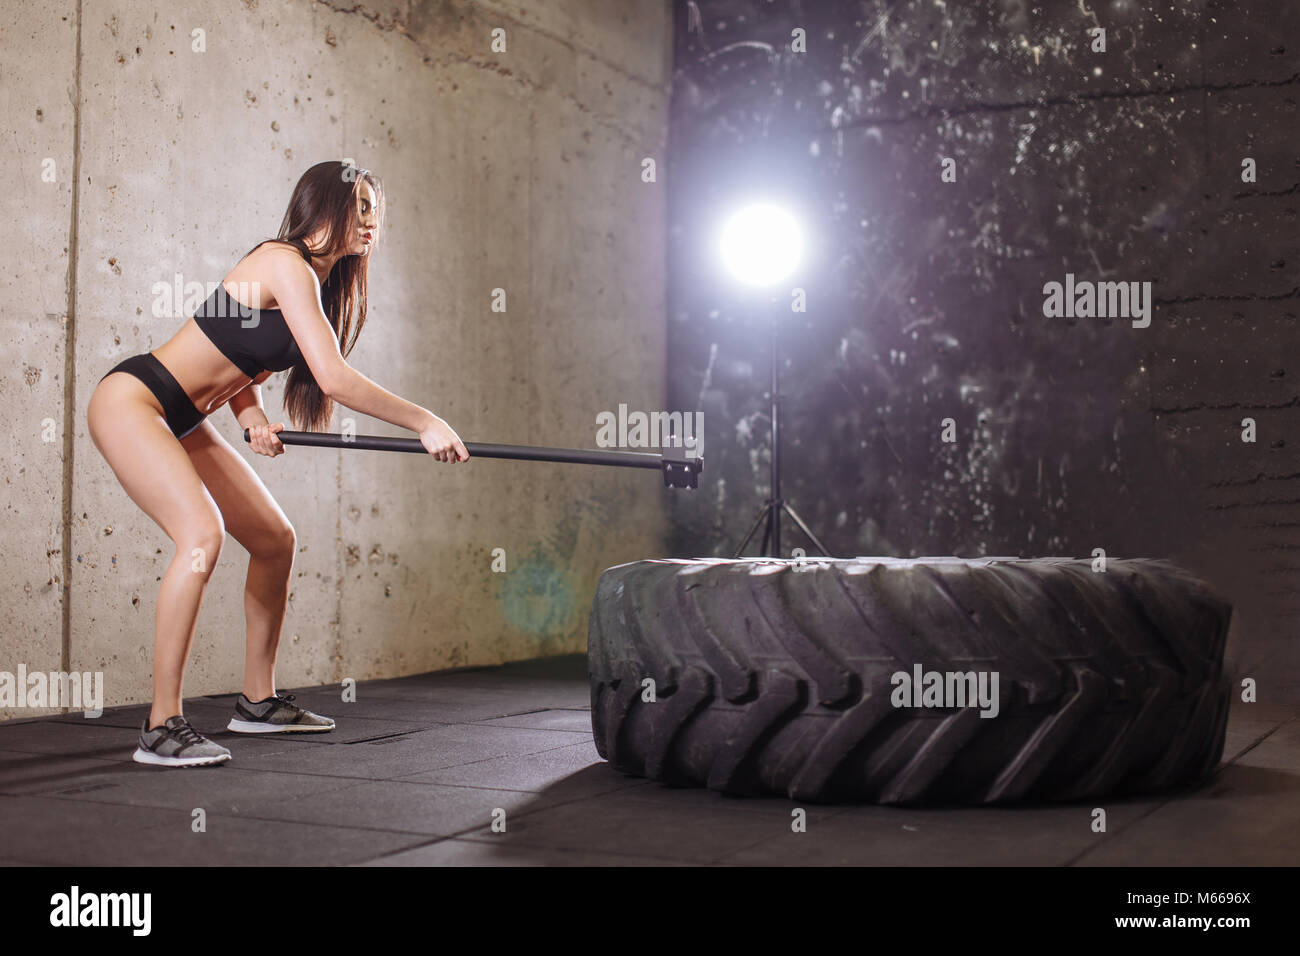 woman smashing large tire with sledgehammer during intense workout in fit gym - Stock Image